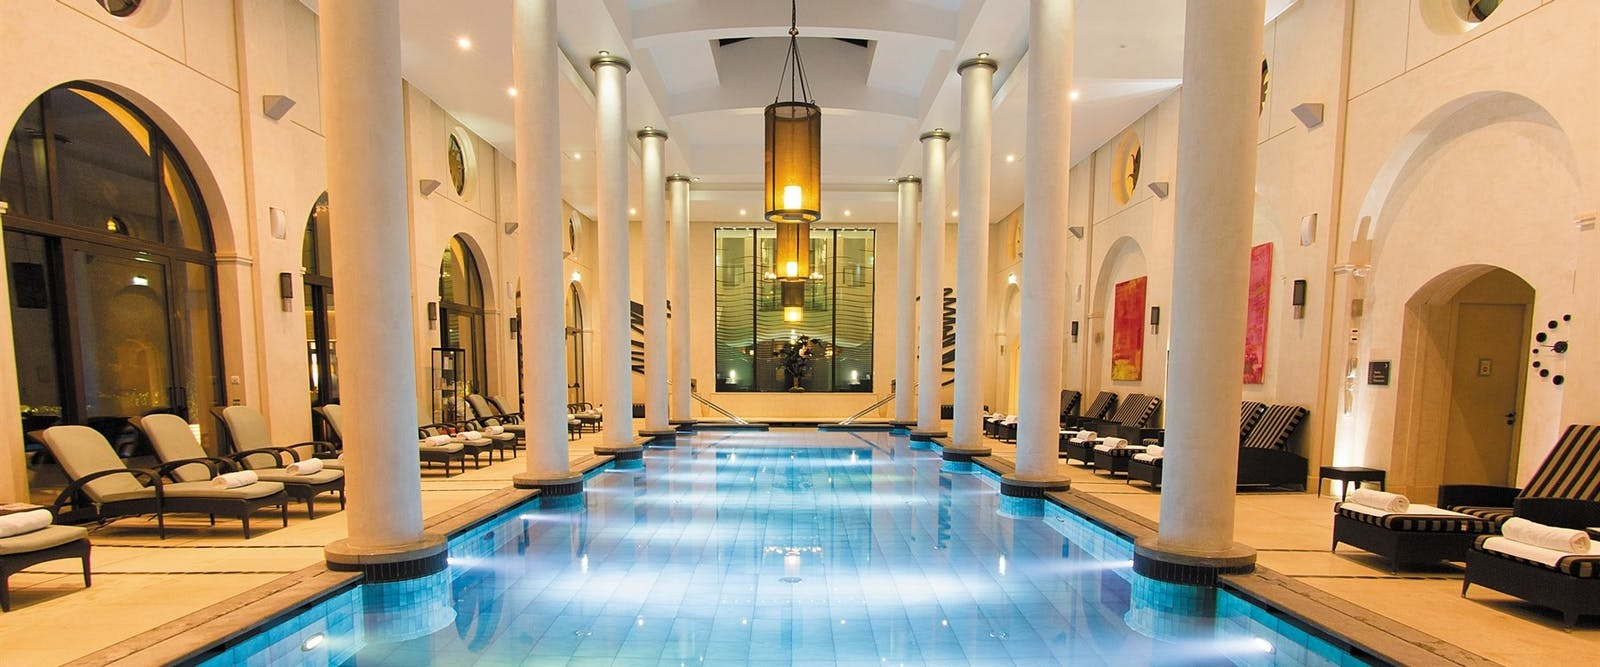 Indoor Pool at Terre Blanche Hotel Spa Golf Resort, Provence, France